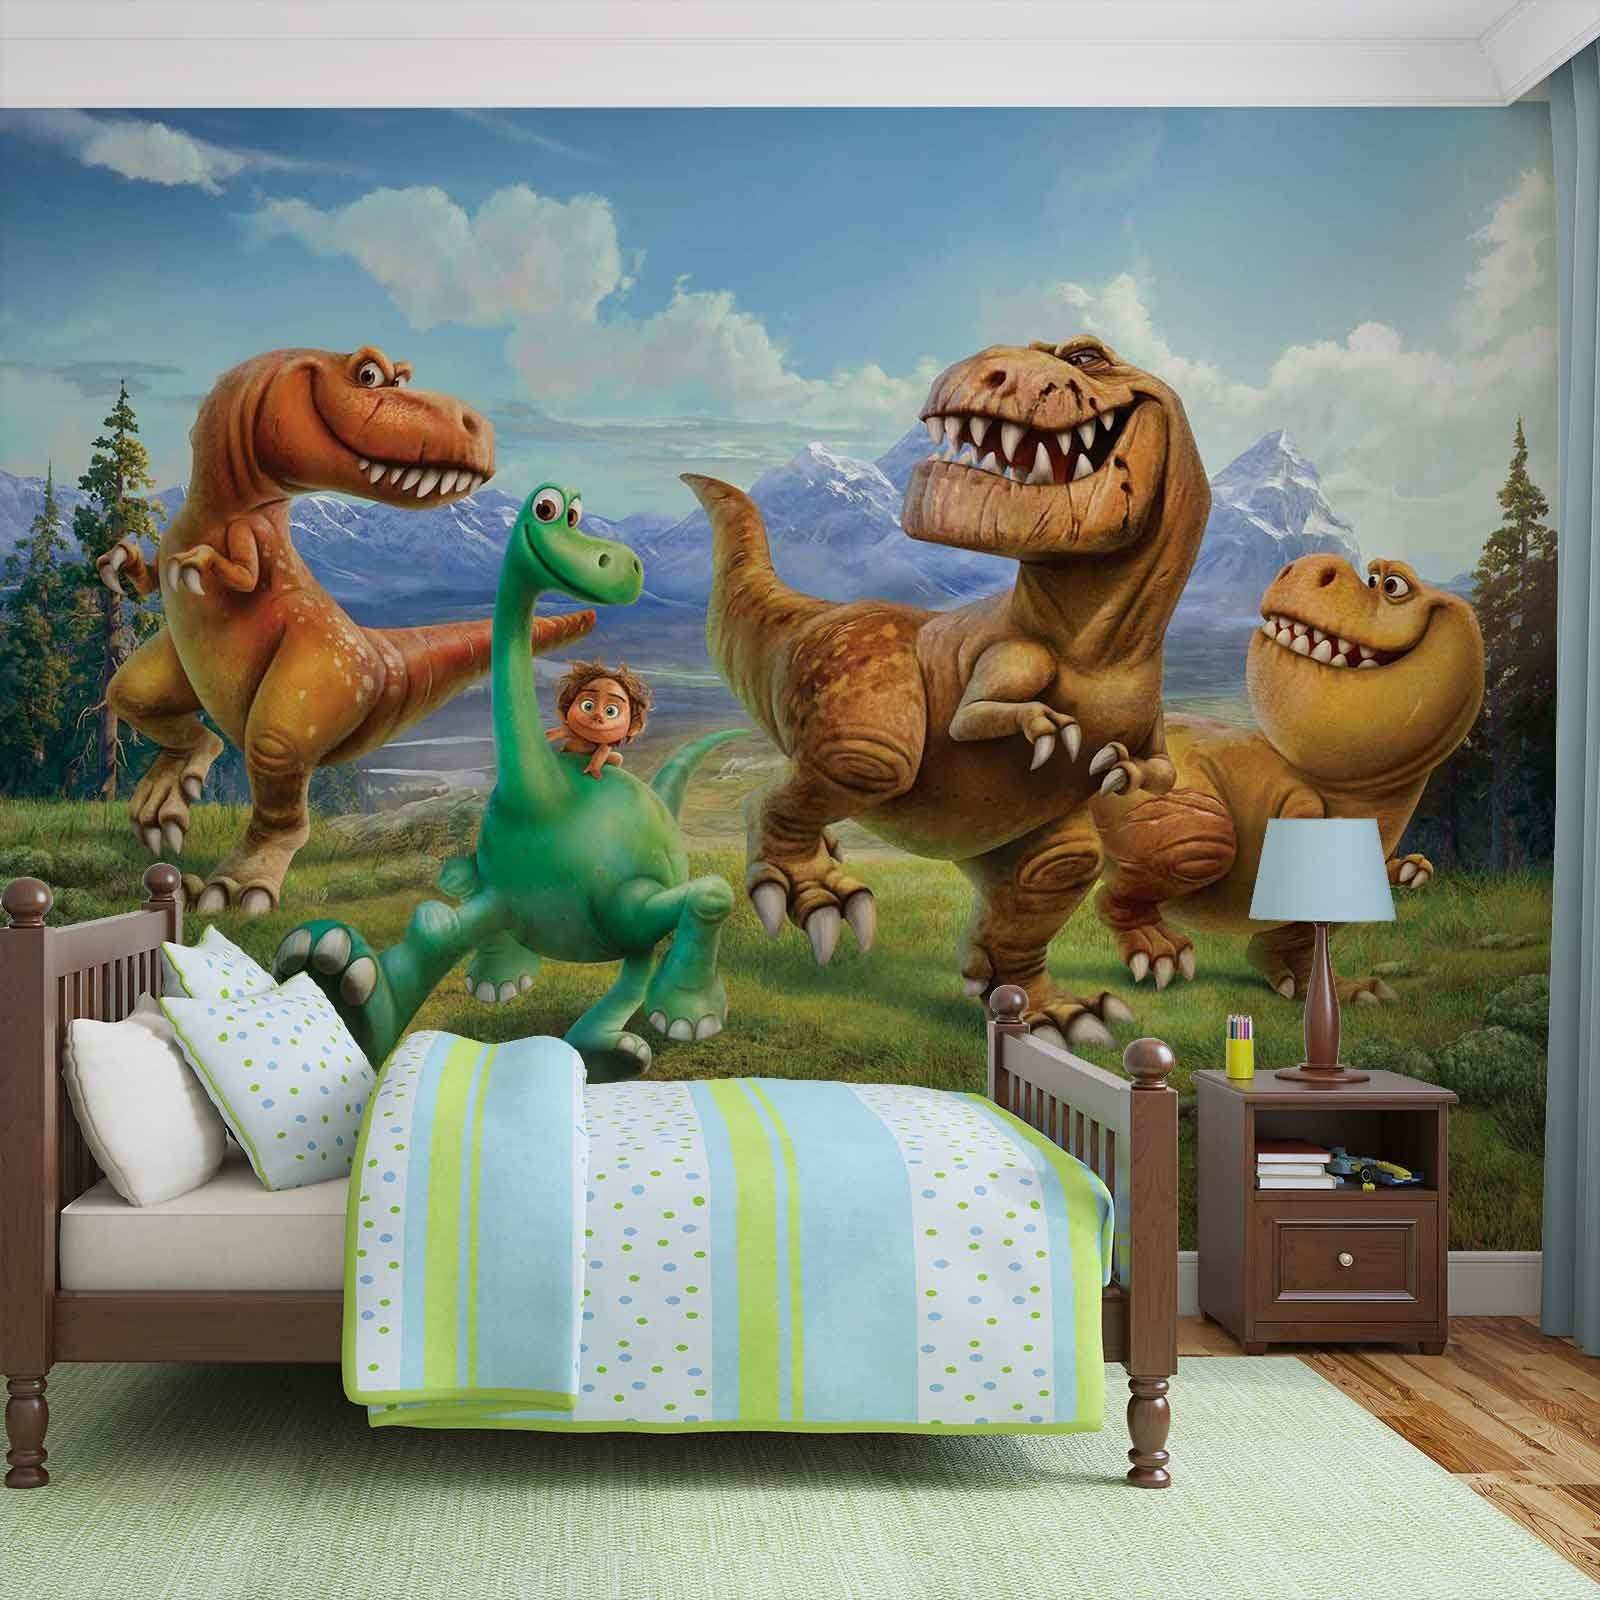 Disney Good Dinosaur Wallpaper Mural 3170WM Top 50